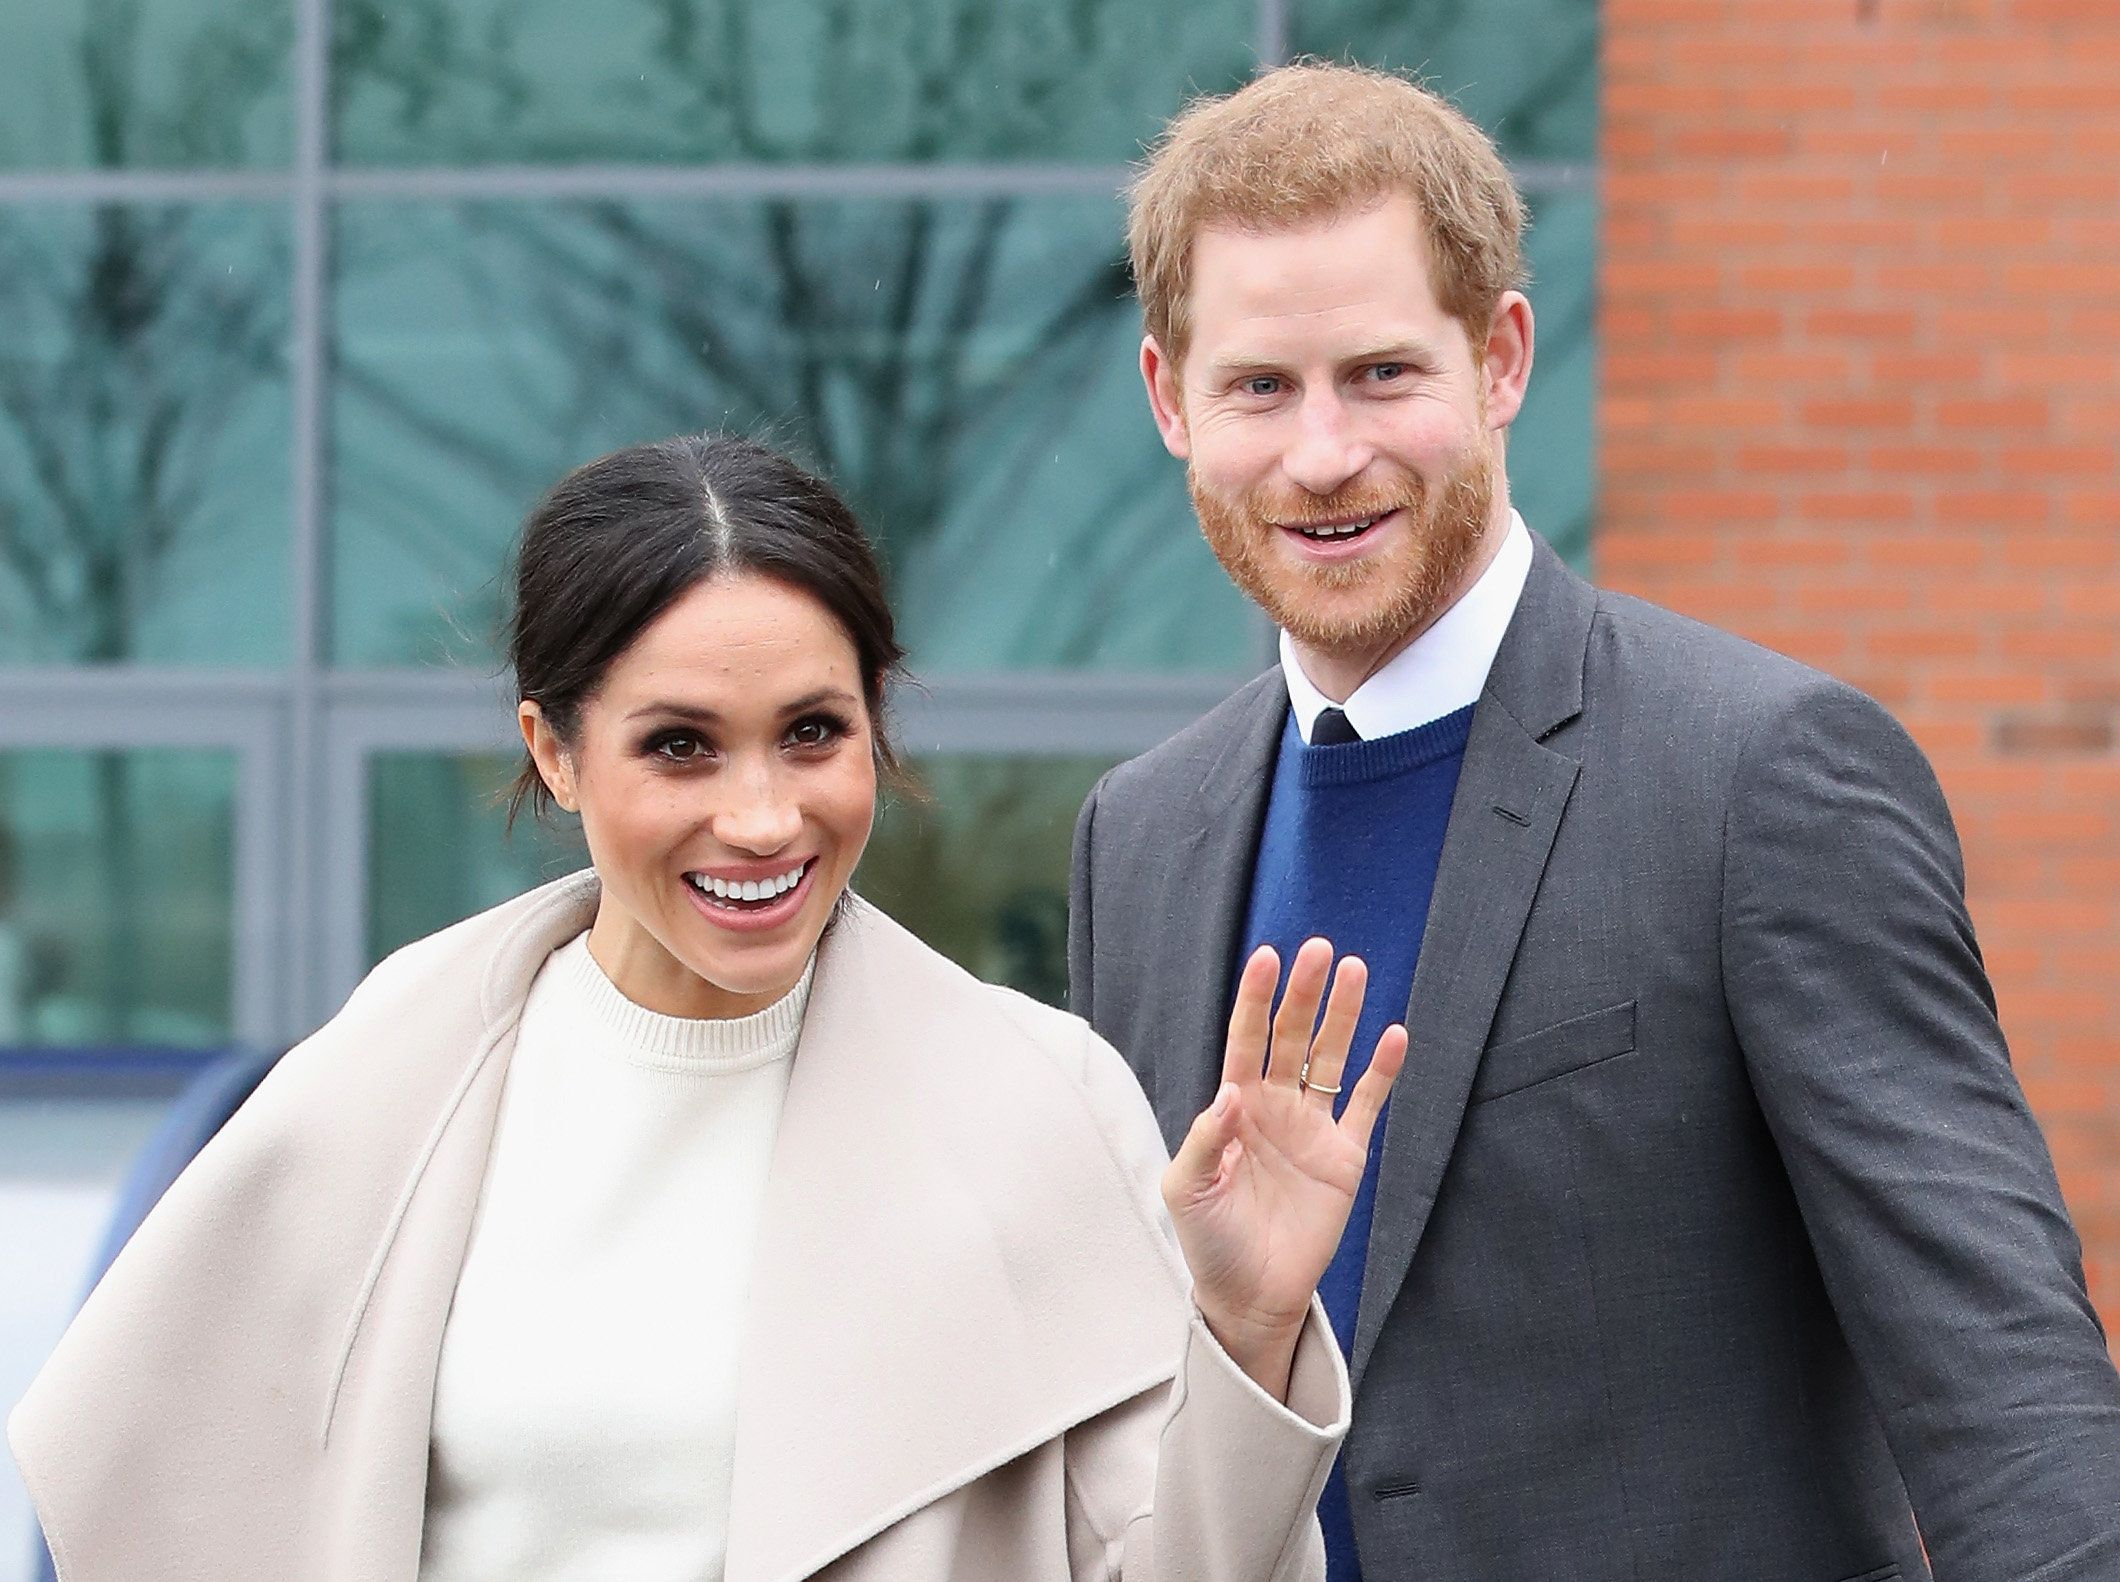 BELFAST, NORTHERN IRELAND - MARCH 23:  Prince Harry and Meghan Markle depart from Catalyst Inc, Northern Ireland's next generation science park on March 23, 2018 in Belfast, Nothern Ireland.  (Photo by Chris Jackson - Pool/Getty Images)